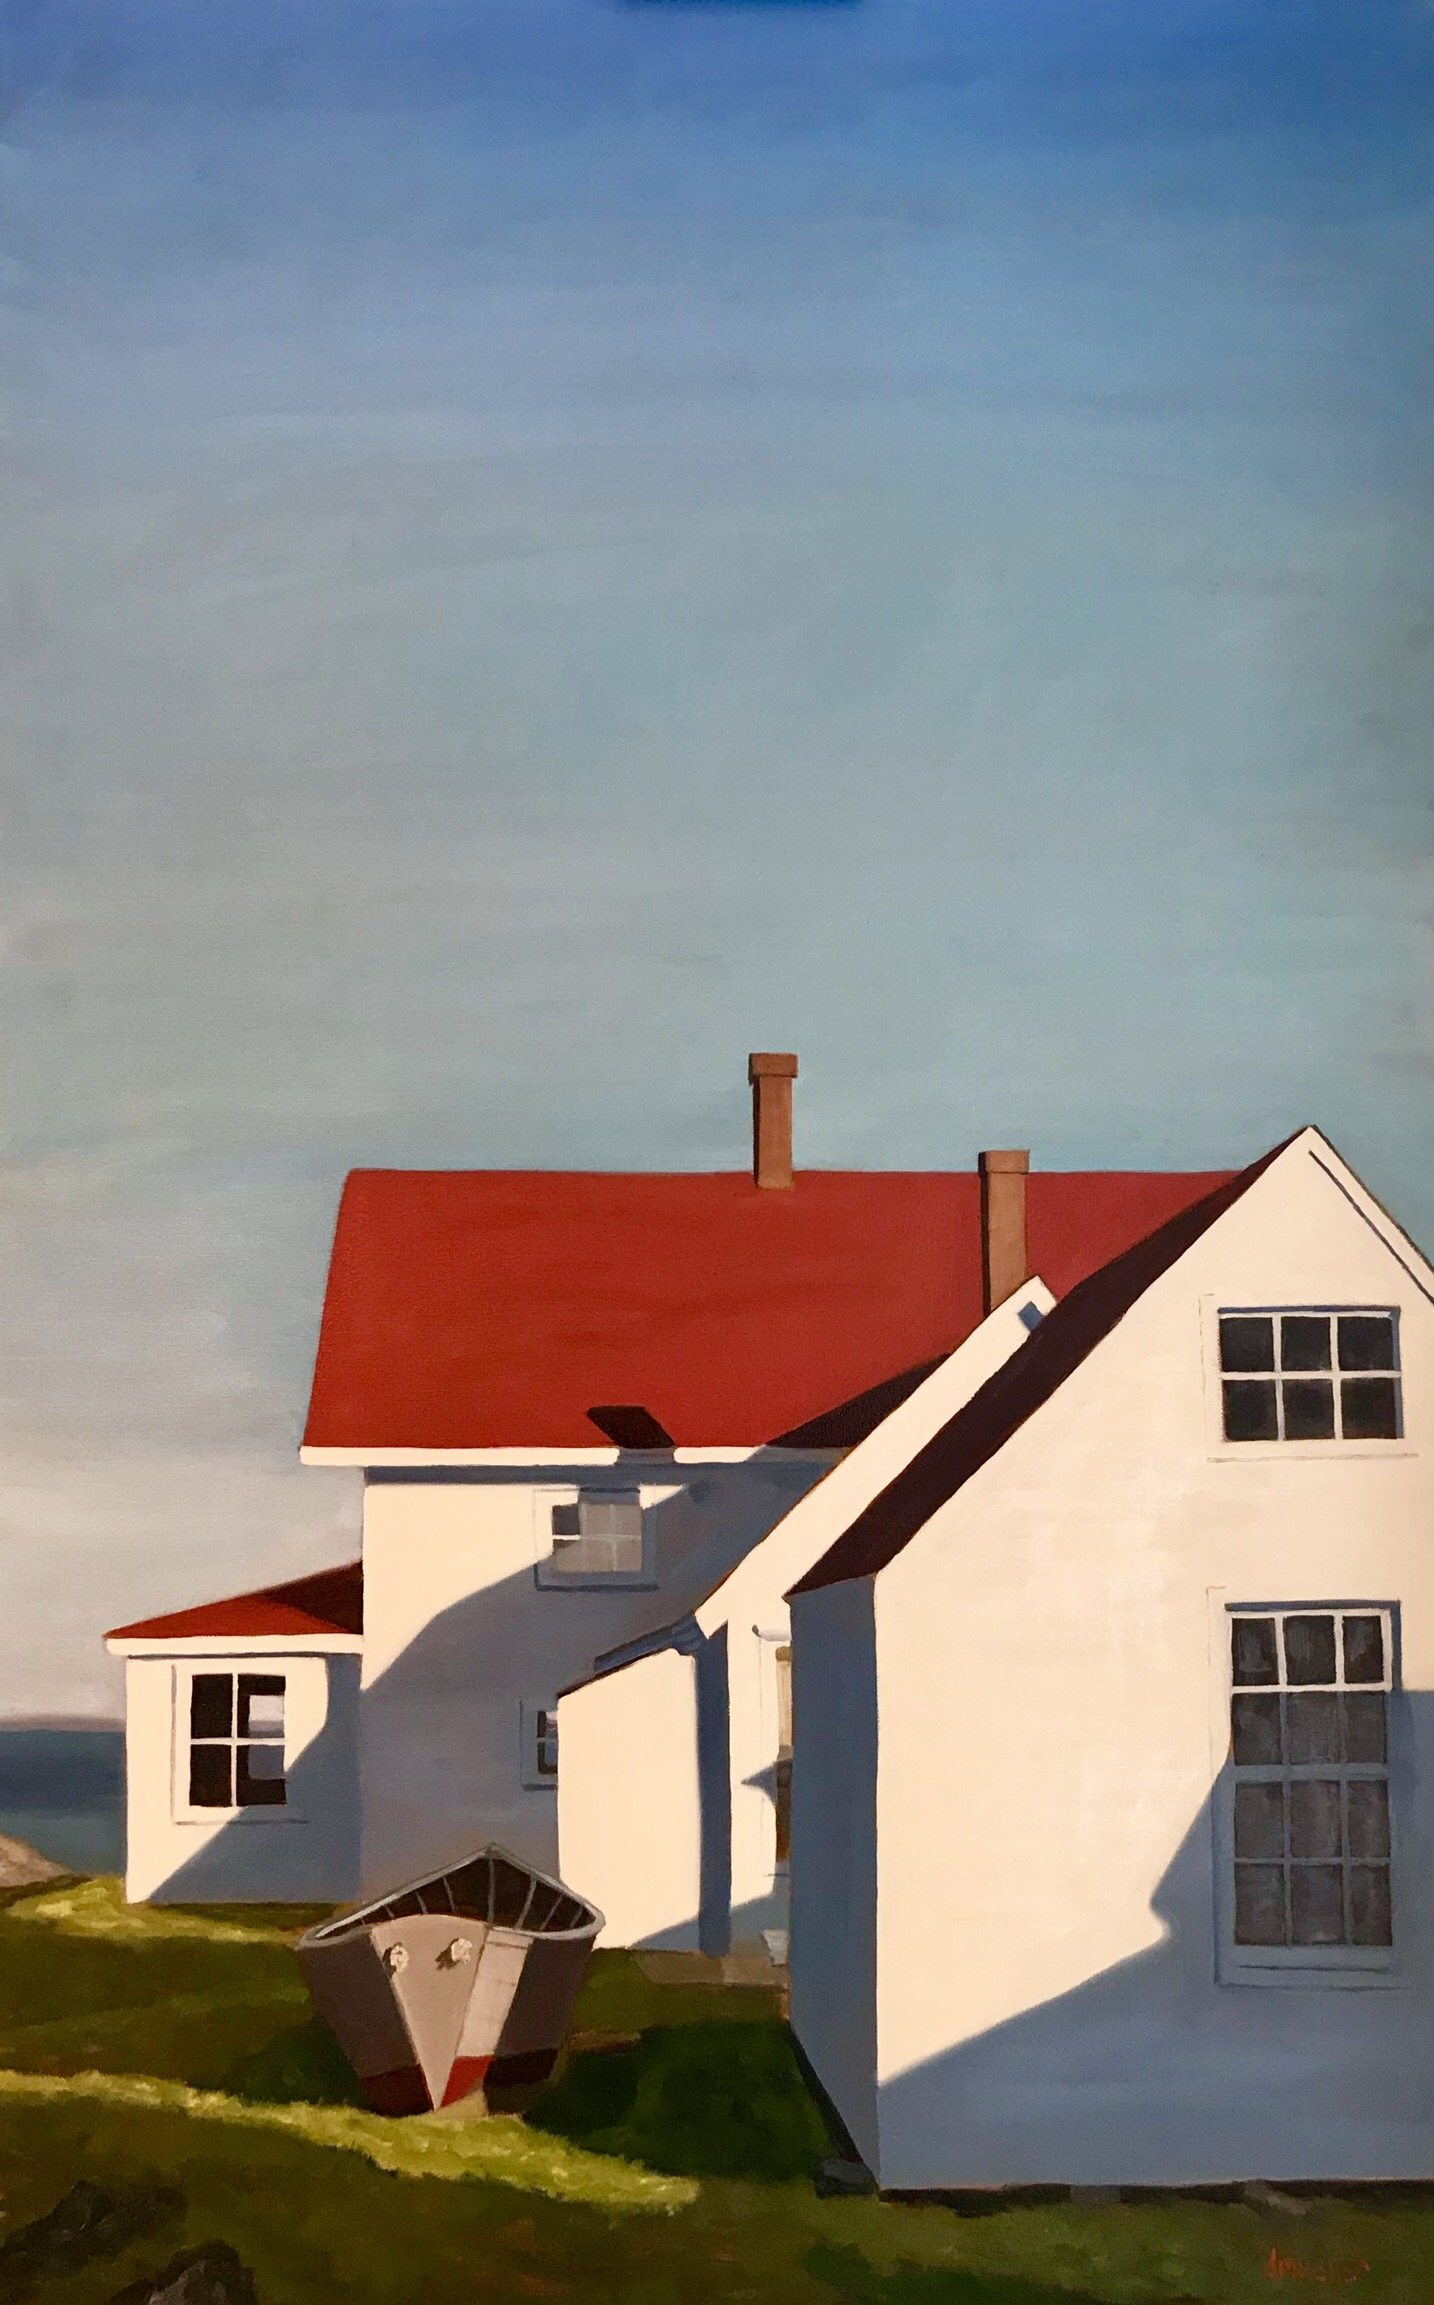 """- Debbie Mueller's painting """"Morning Geometry"""" has been awarded First Place in the Landscape division of Artist's Magazine Annual Art Competition for artists with less than six years of painting experience (Student Division). The painting will be featured in the December issue of Artist's Magazine."""